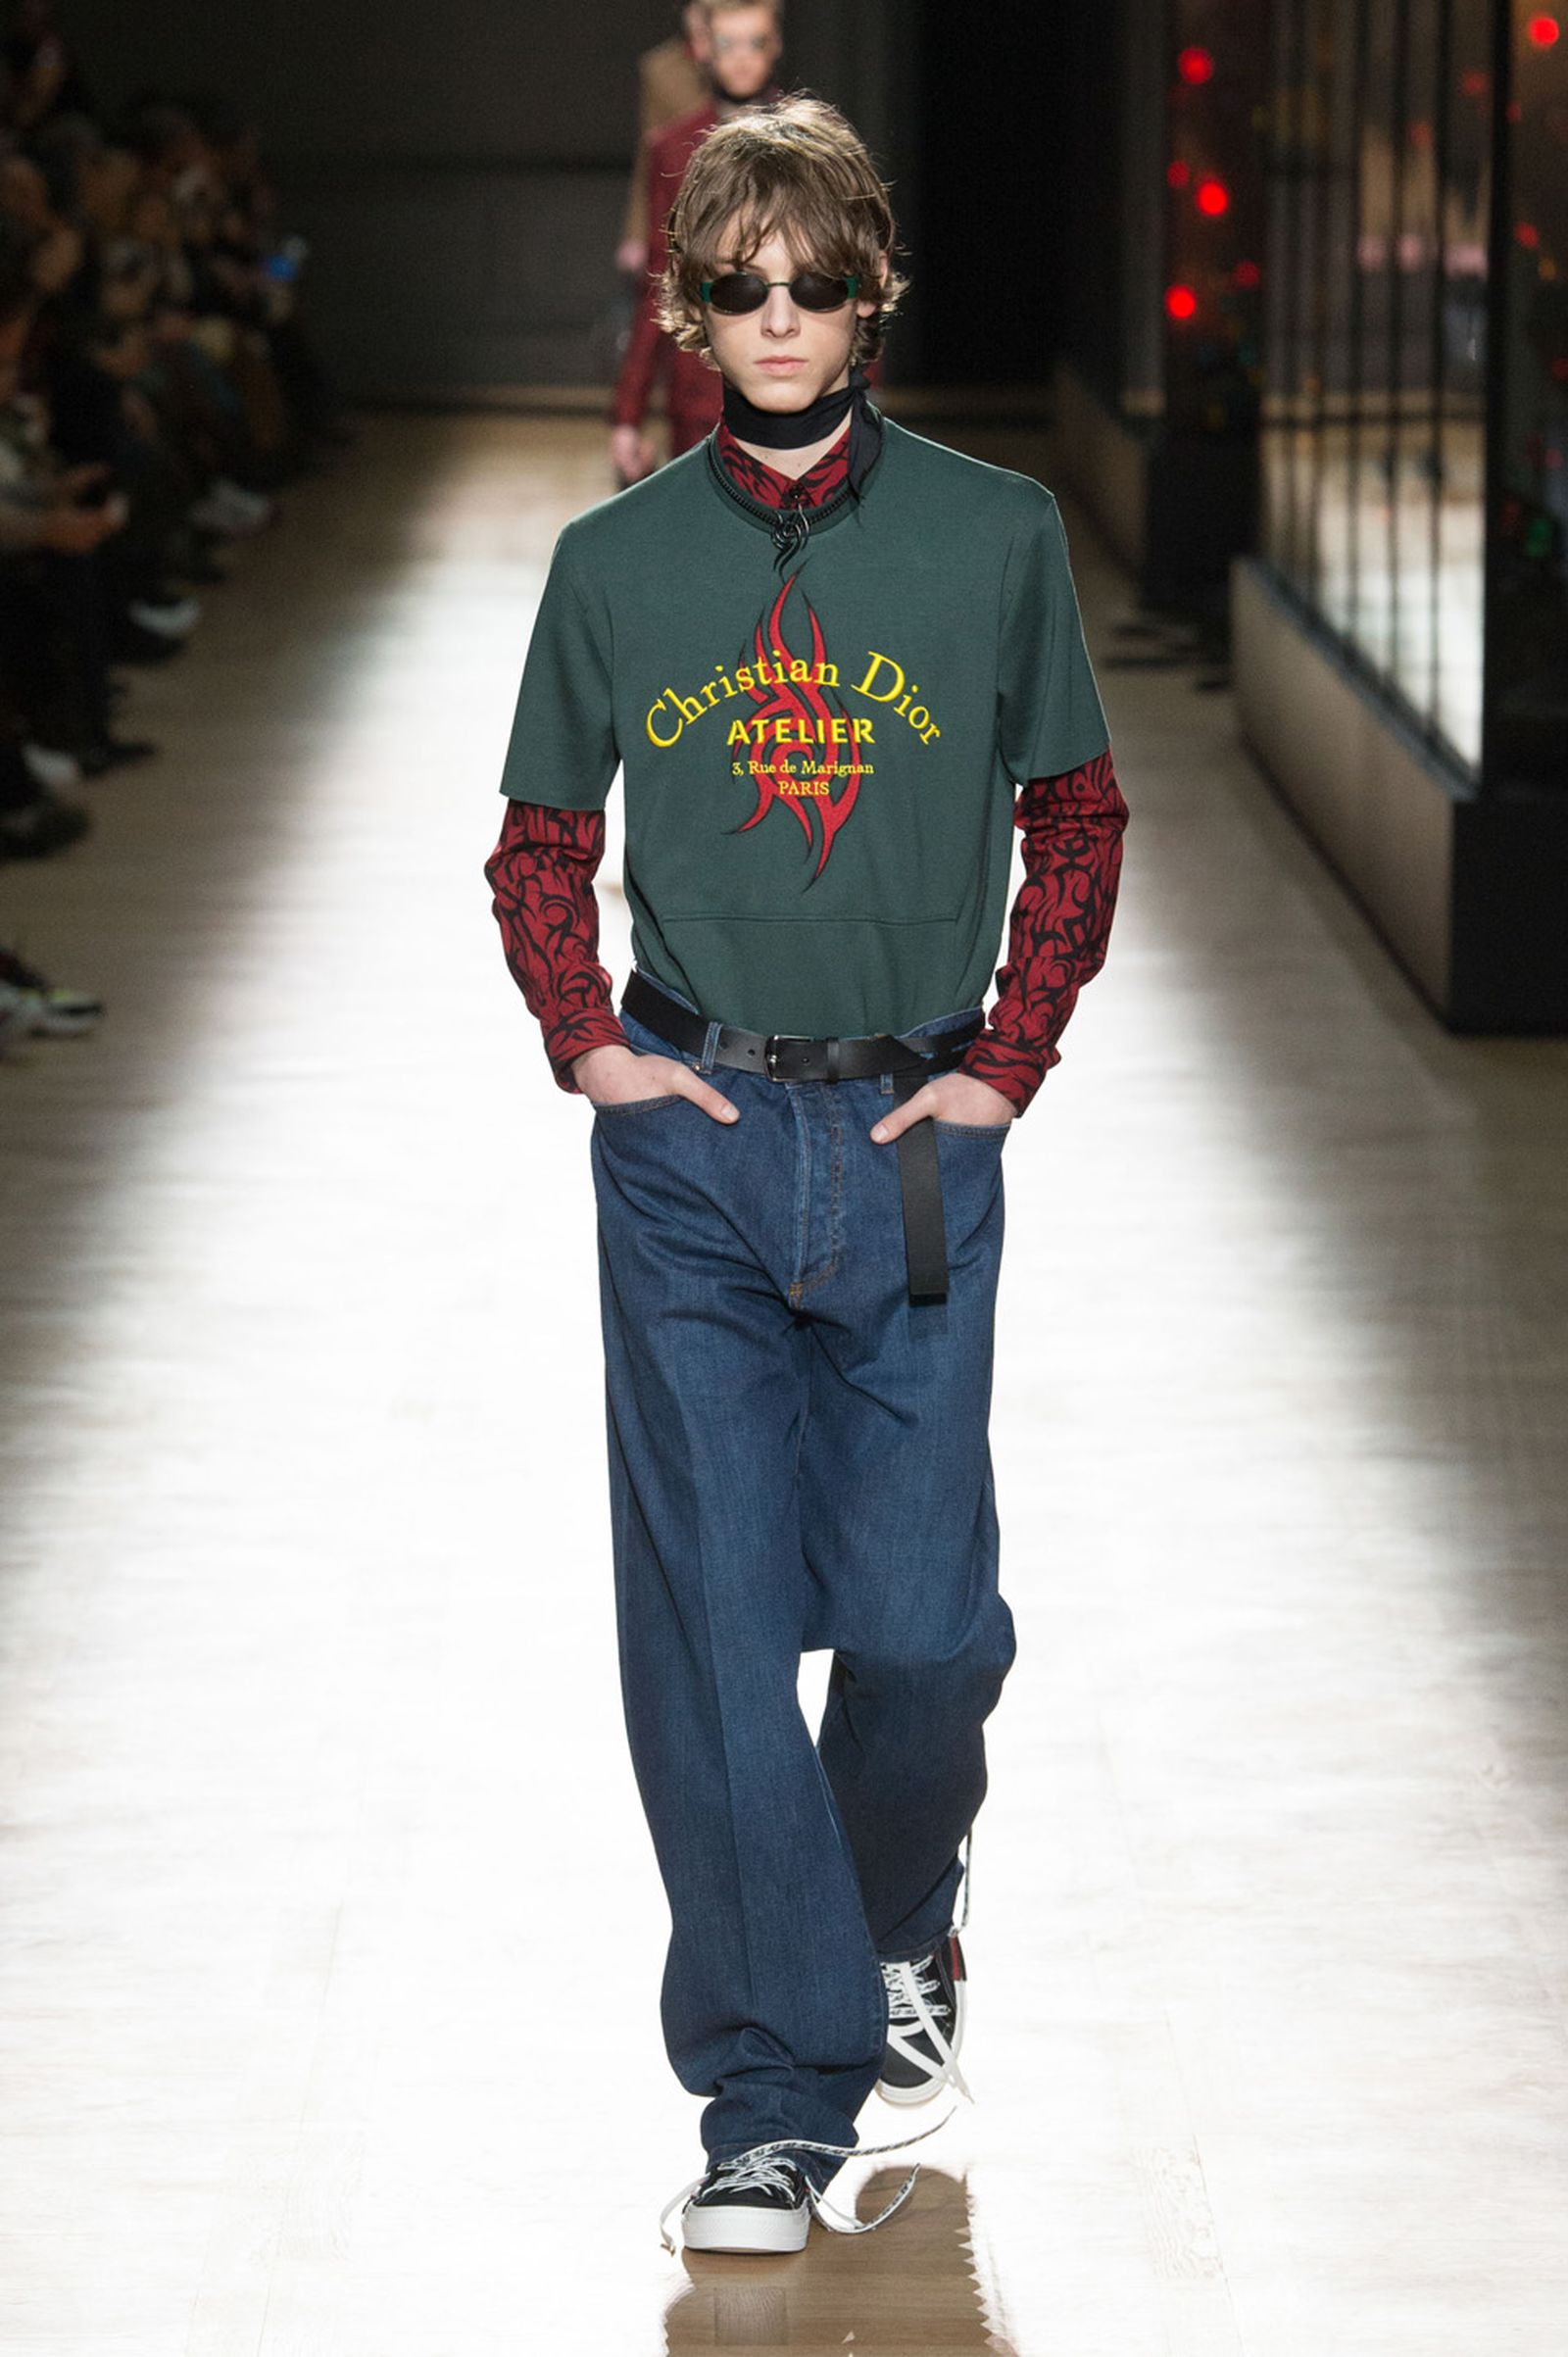 DIOR HOMME WINTER 18 19 BY PATRICE STABLE look27 Fall/WInter 2018 runway